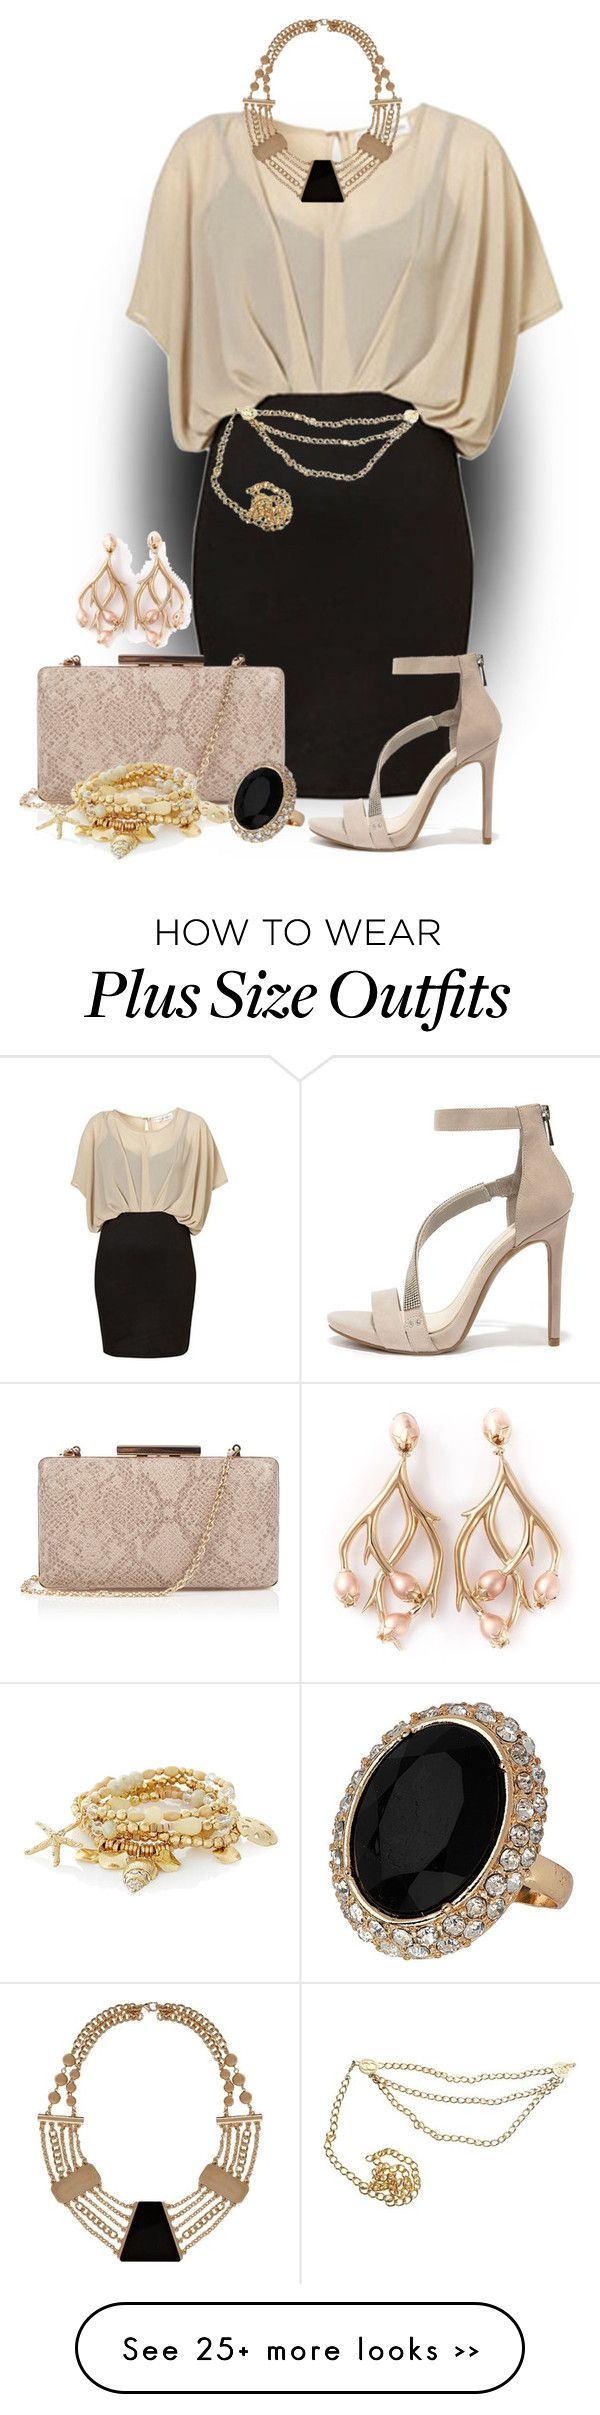 """Date Nite 2"" by sabrina-mcknight on Polyvore"